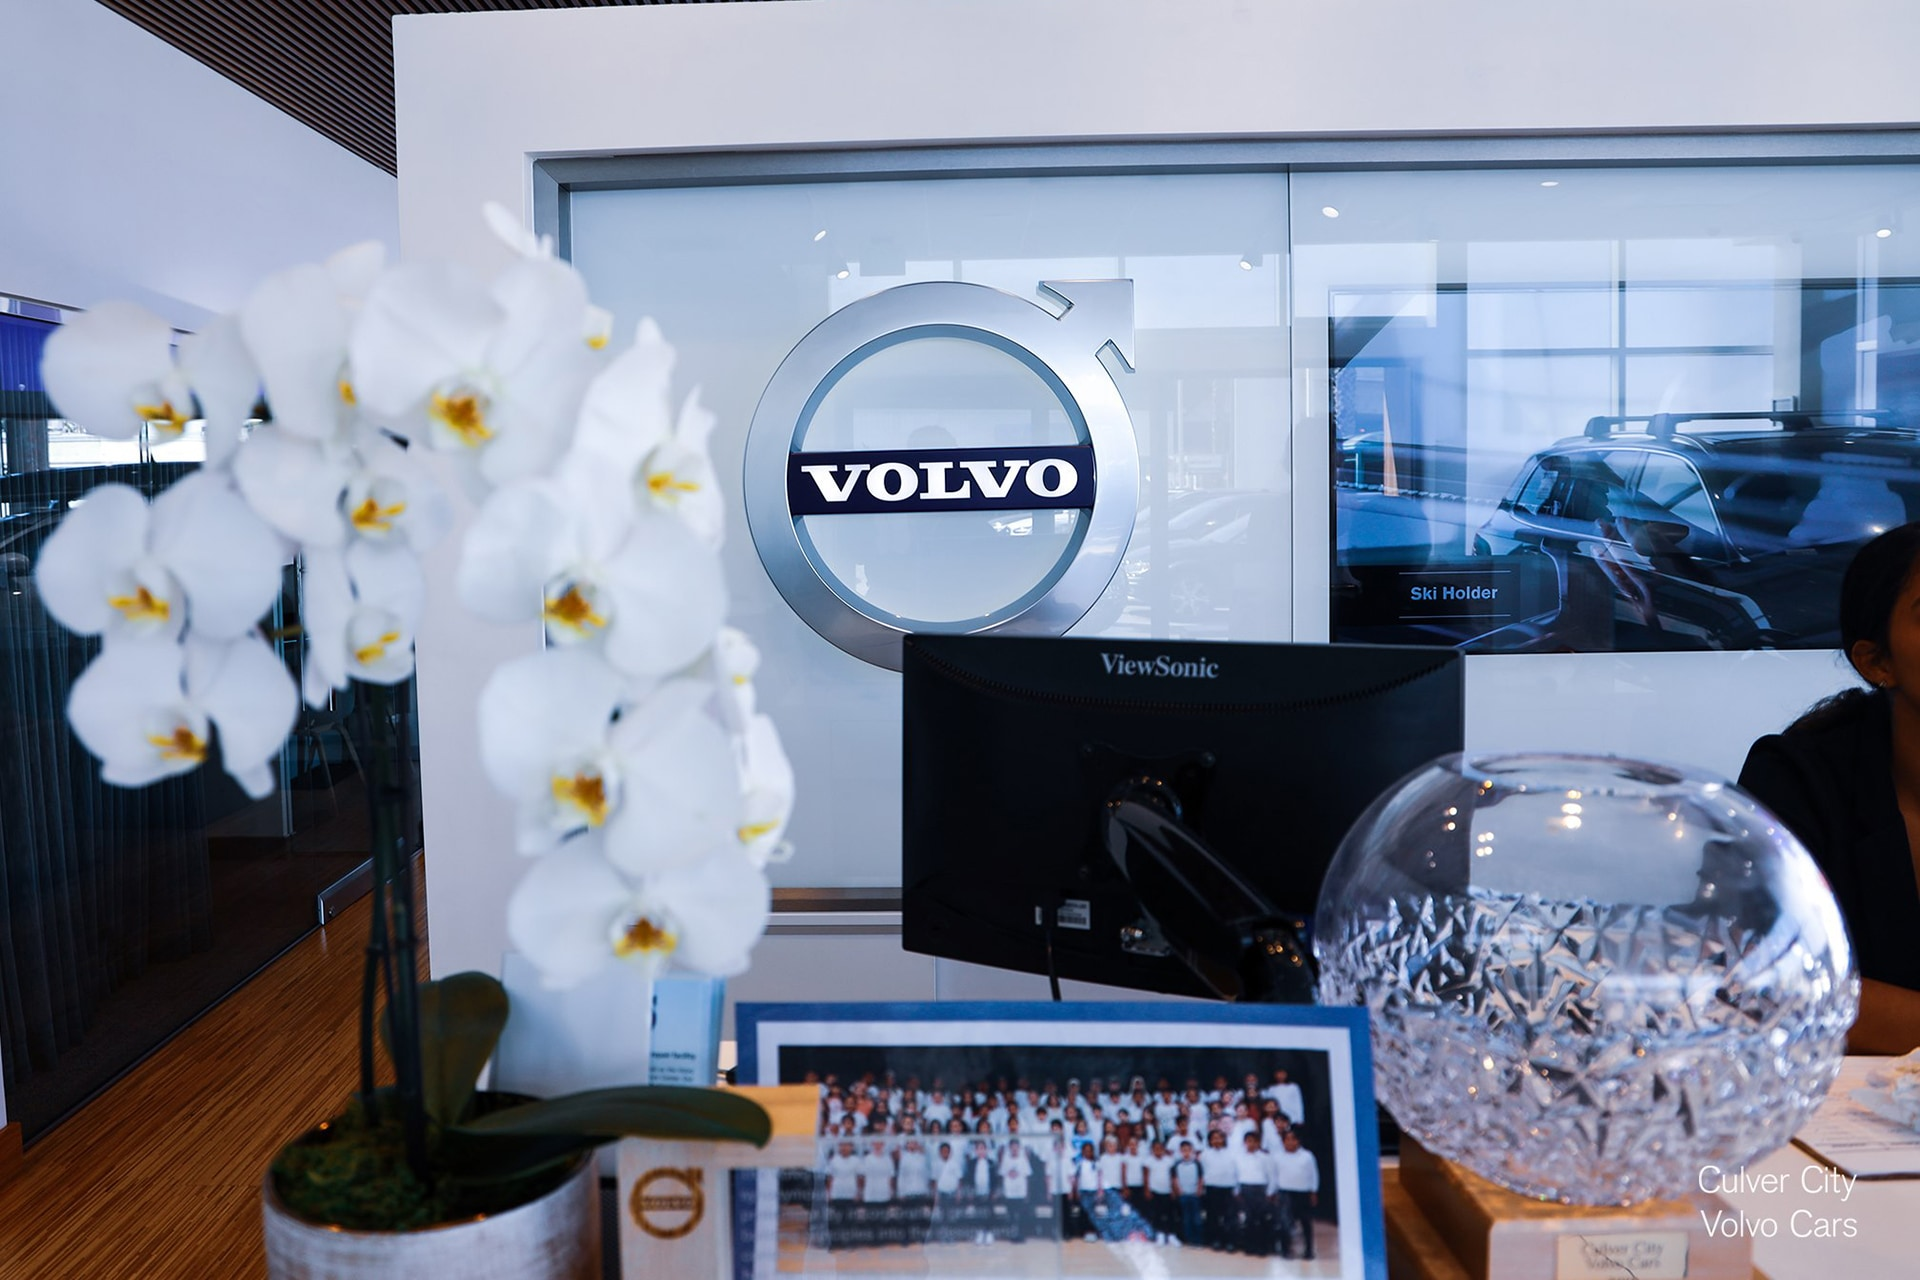 Culver City Volvo Cars has great customer service to help you